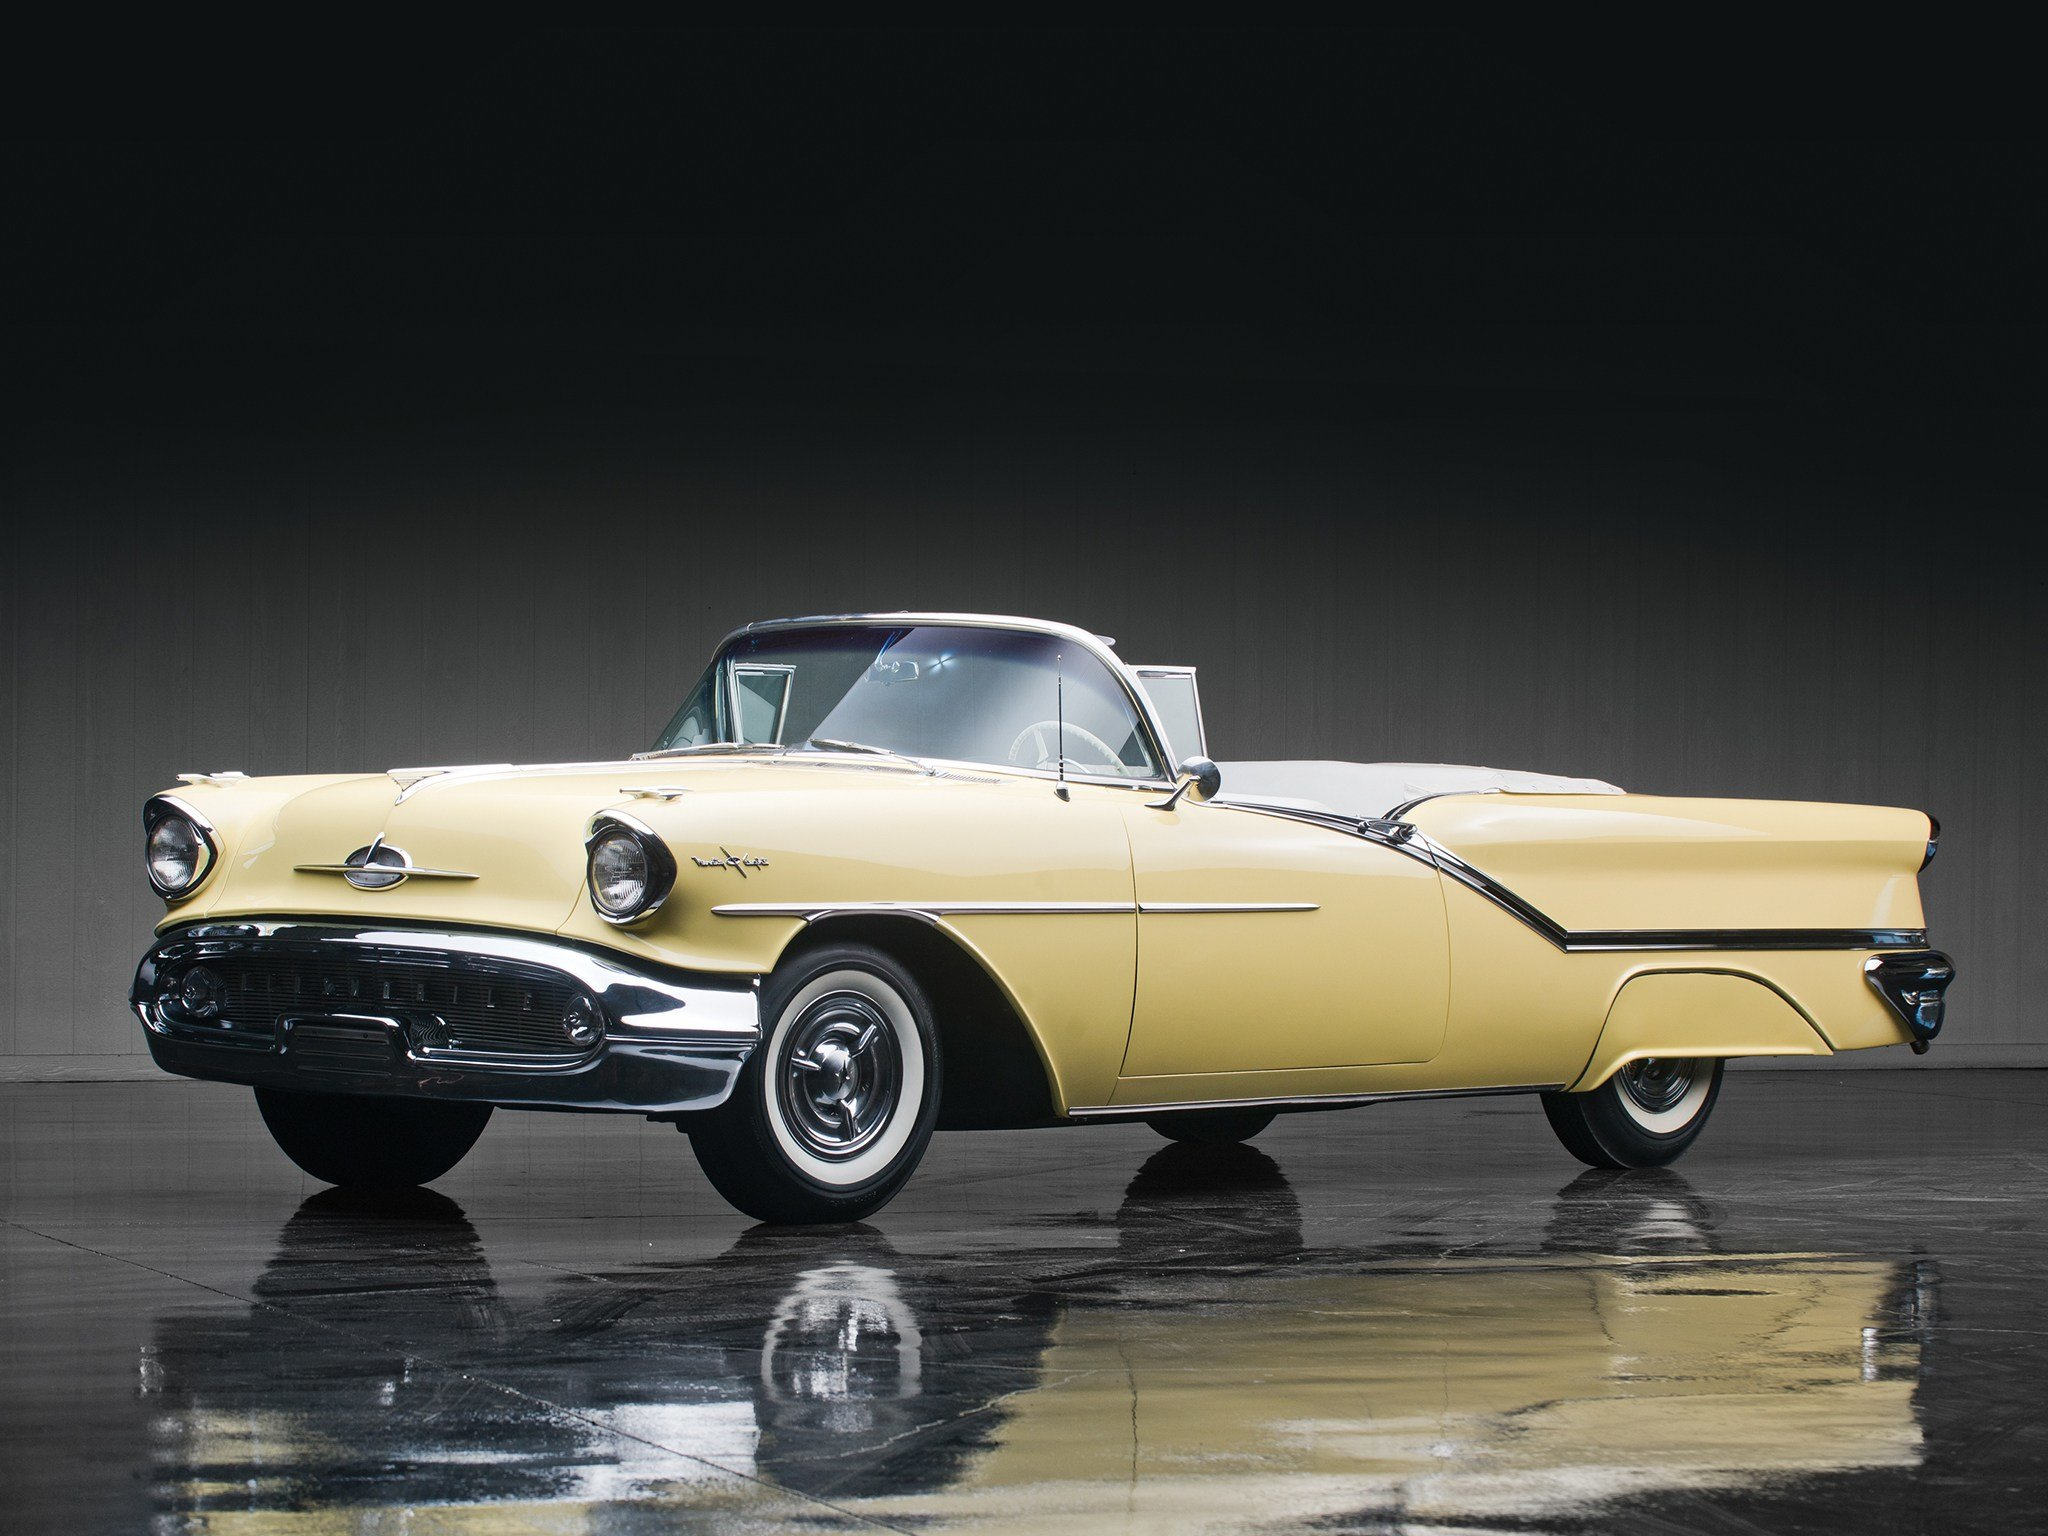 Latest 1957 Oldsmobile Starfire 98 Convertible 3067Dx Retro 9 8 Free Download